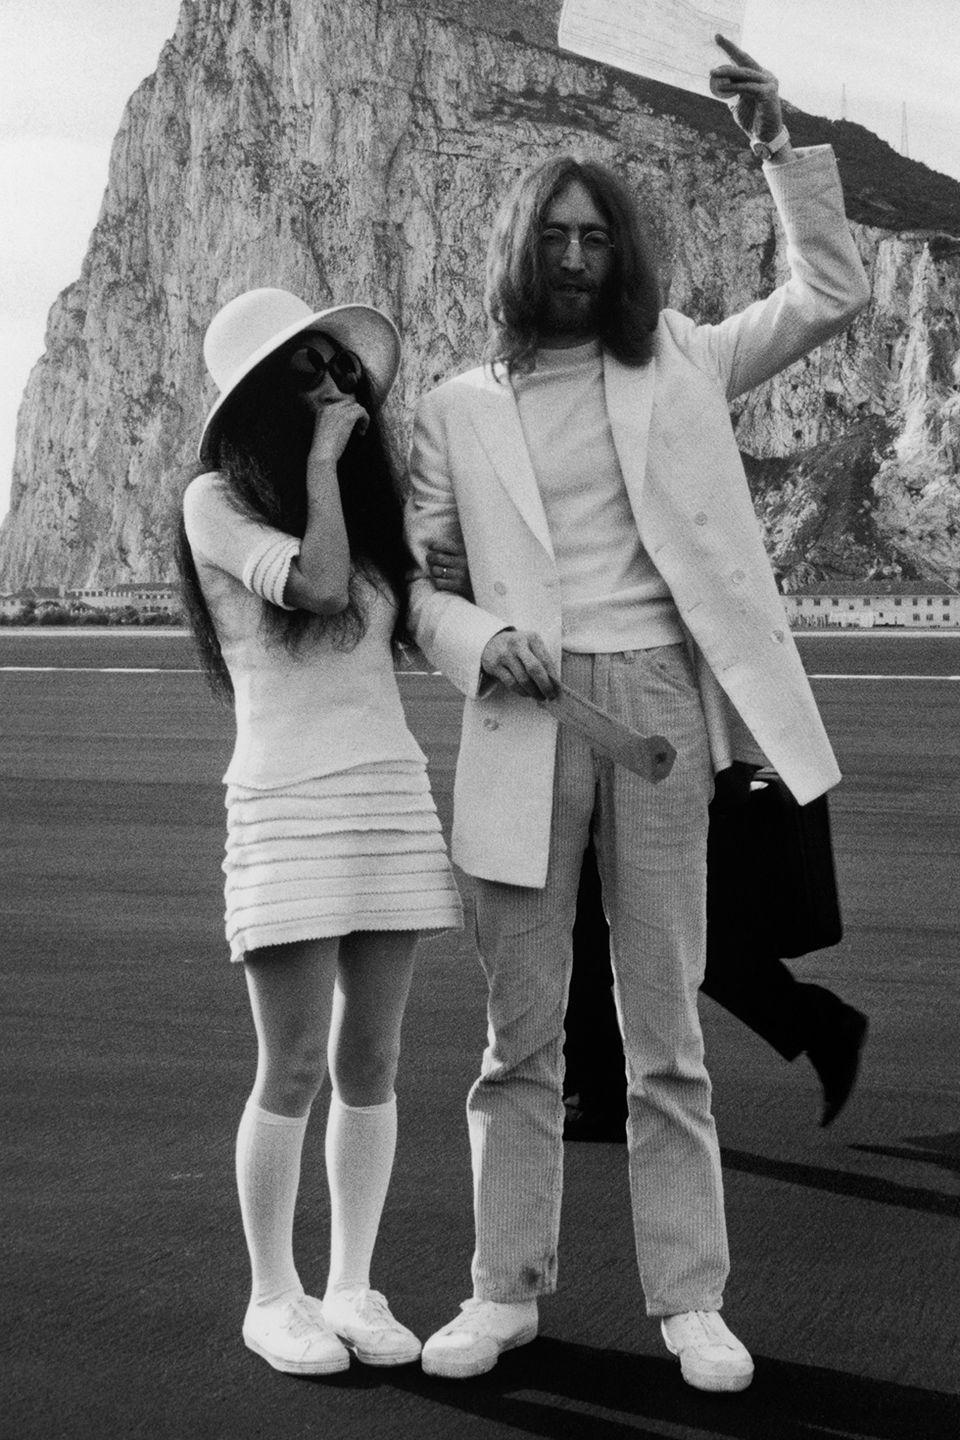 <p>Did you really think Yoko Ono would wear a conventional wedding dress to tie the knot with John Lennon? No way! The couple both wore white to the ceremony in Gibraltar. Yoko sported a miniskirt, top, floppy hat and knee socks.</p>